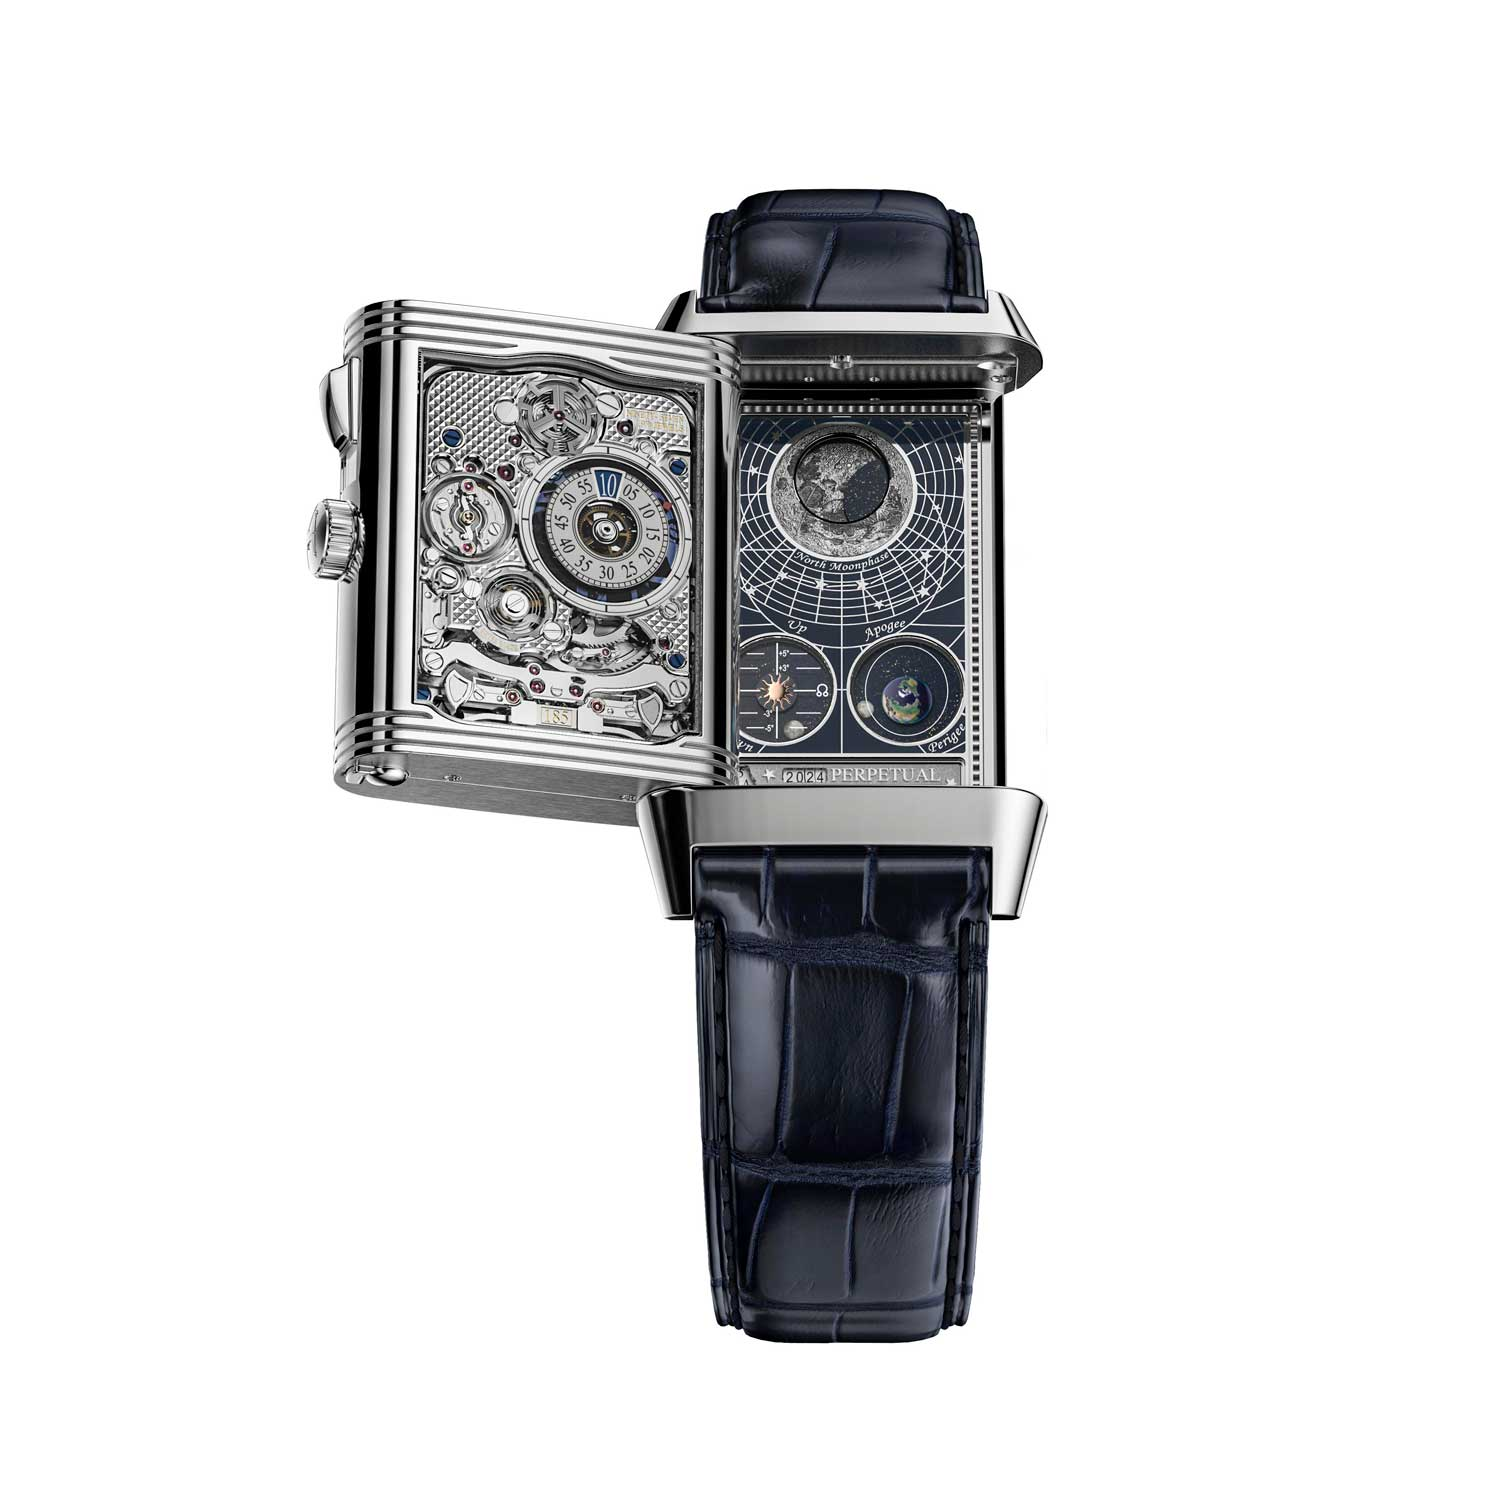 The Reverso Hybris Mechanica Quadriptyque is the world's first wristwatch with four functioning display faces.